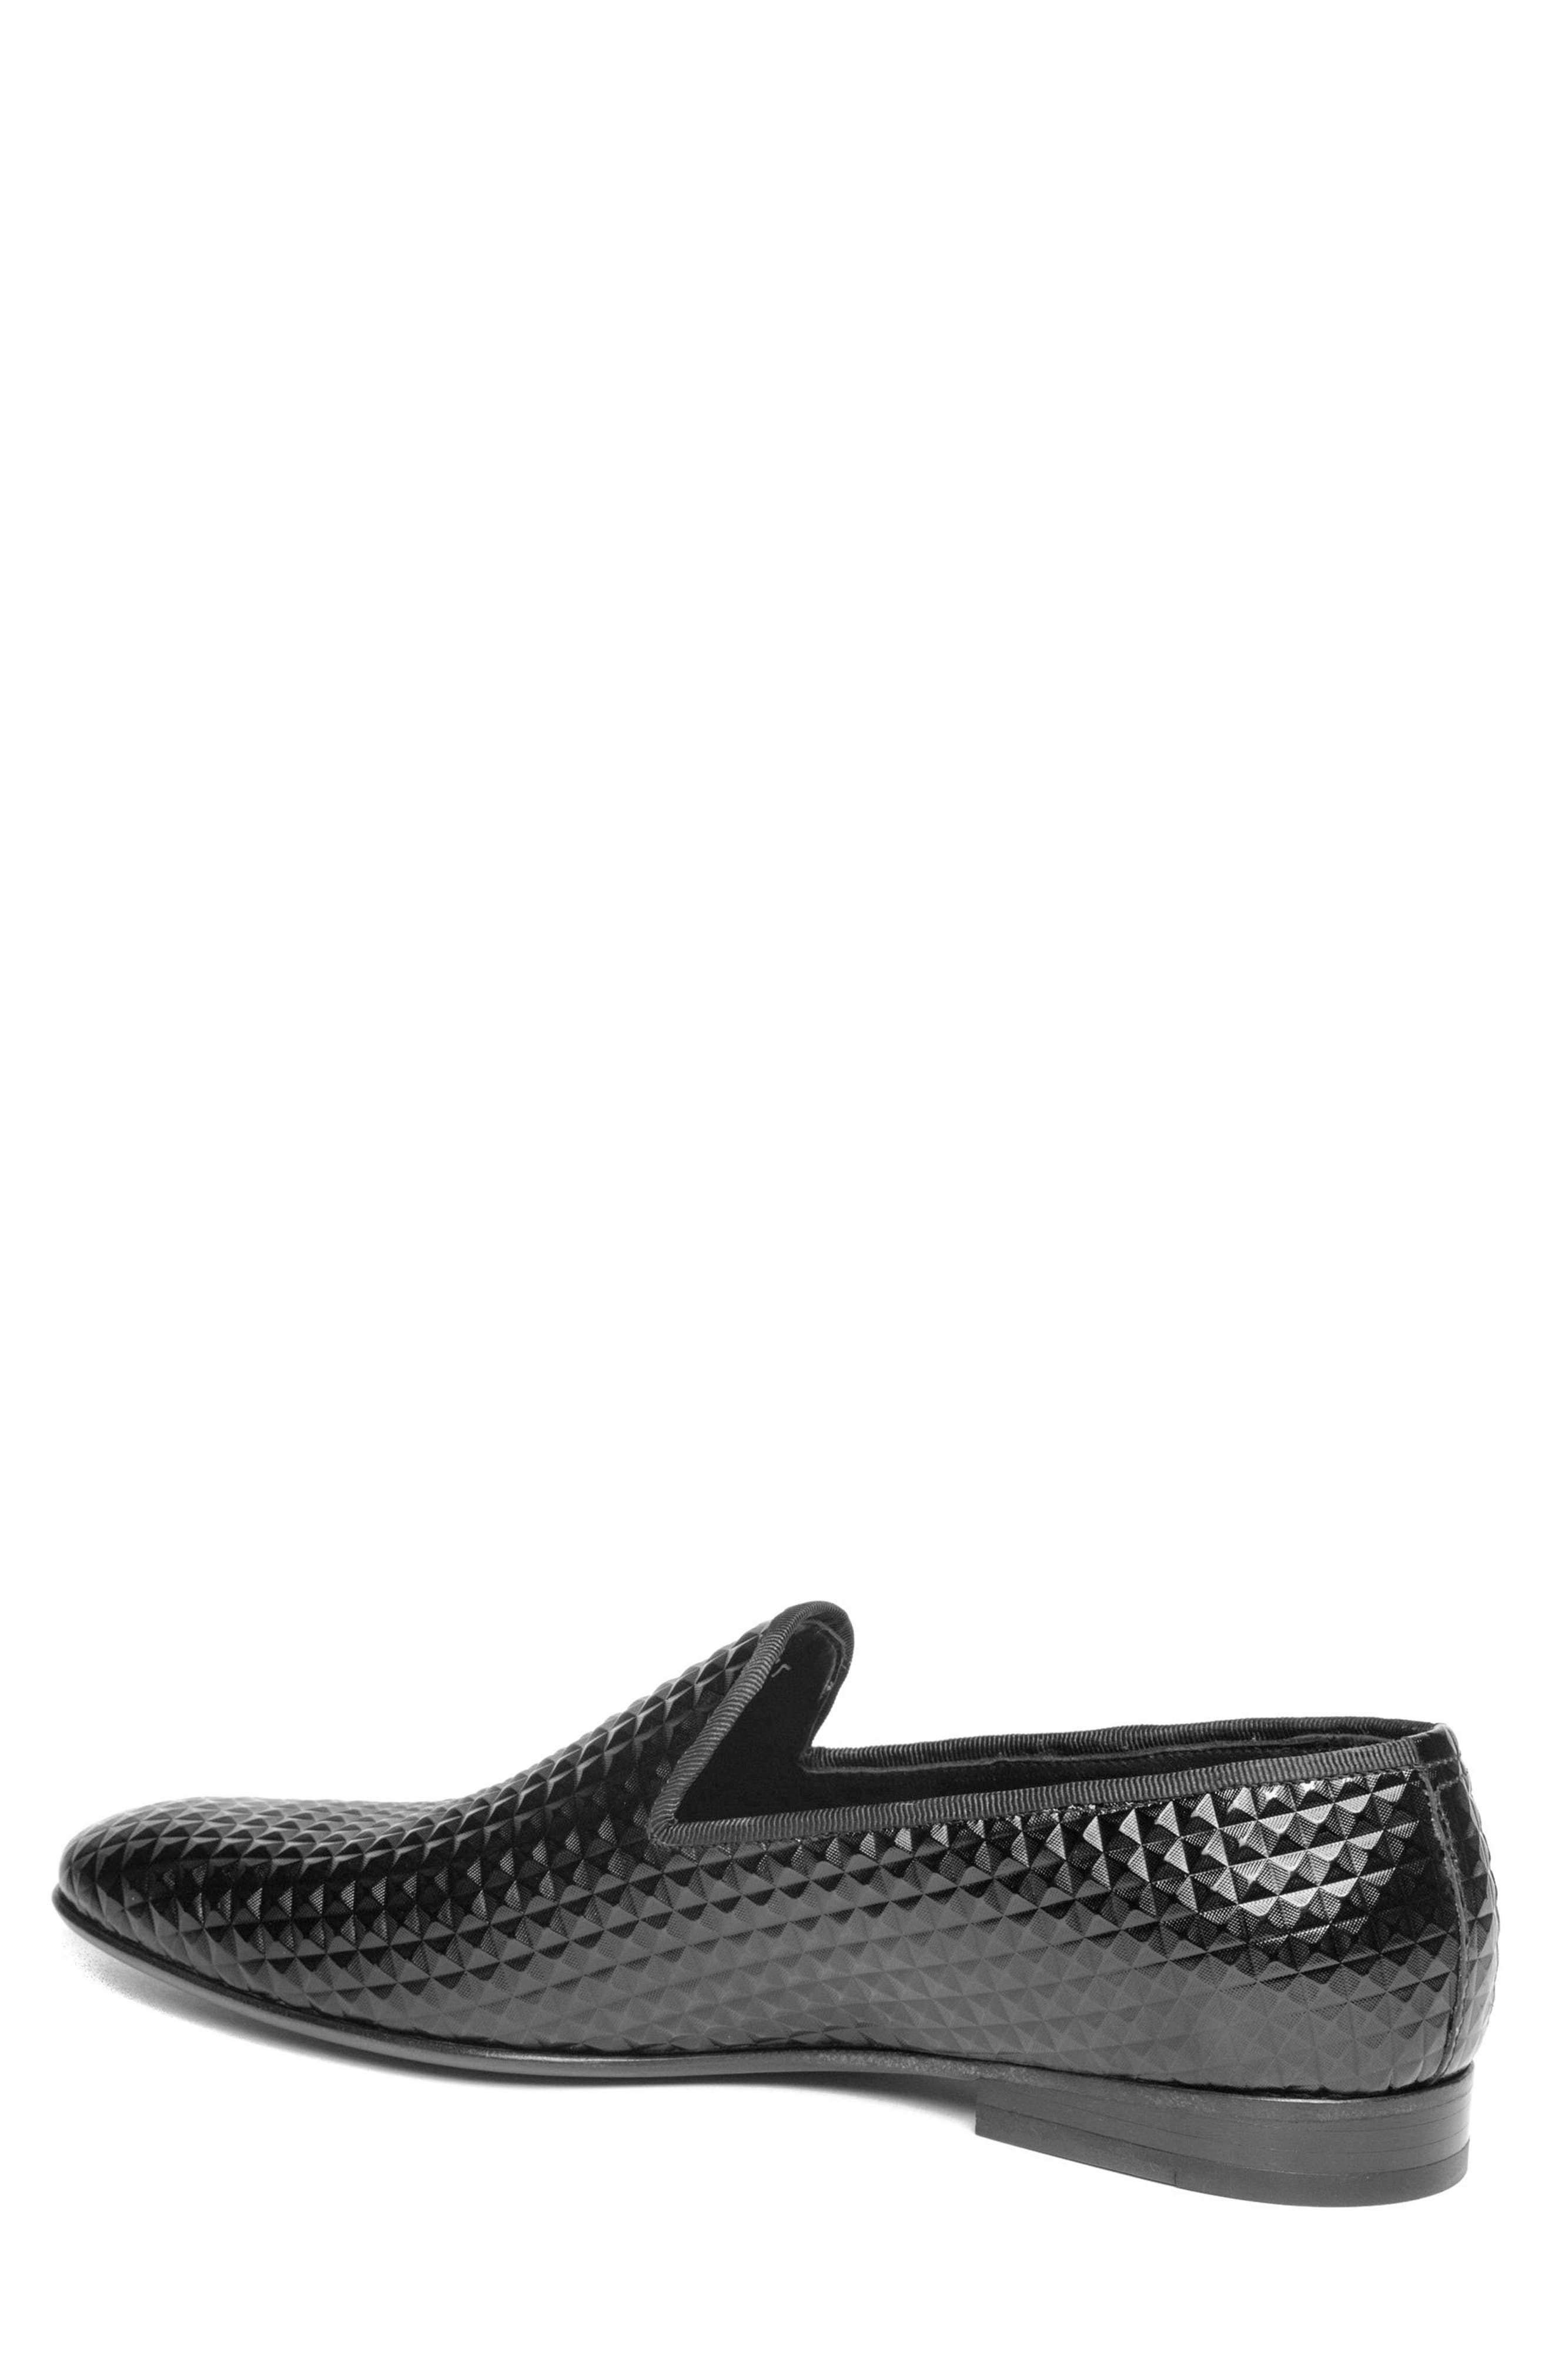 Hugh Pyramid Embossed Venetian Loafer,                             Alternate thumbnail 2, color,                             Black Leather